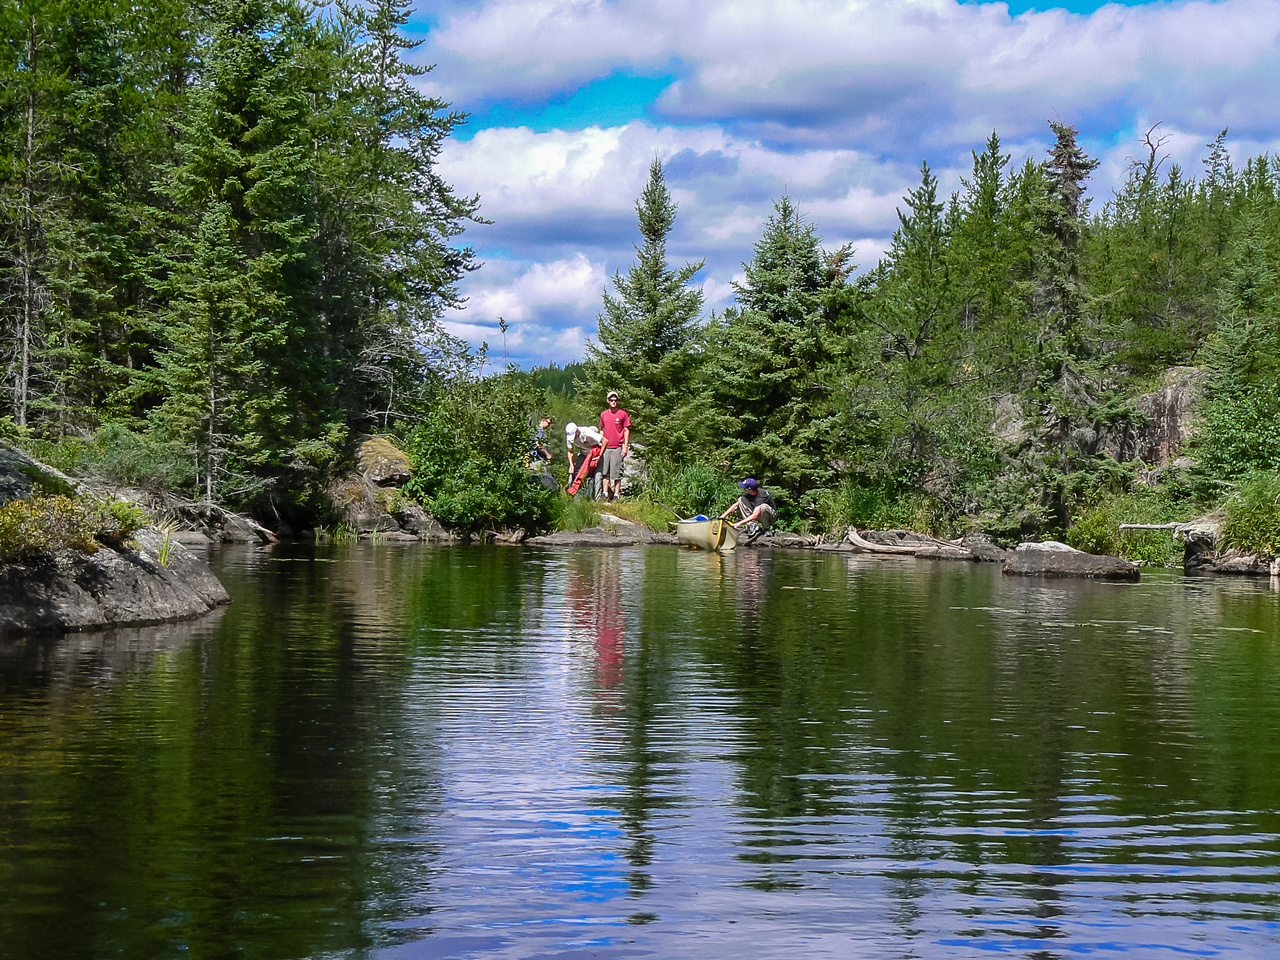 Finishing a short portage along the river from Petch to Reynar.